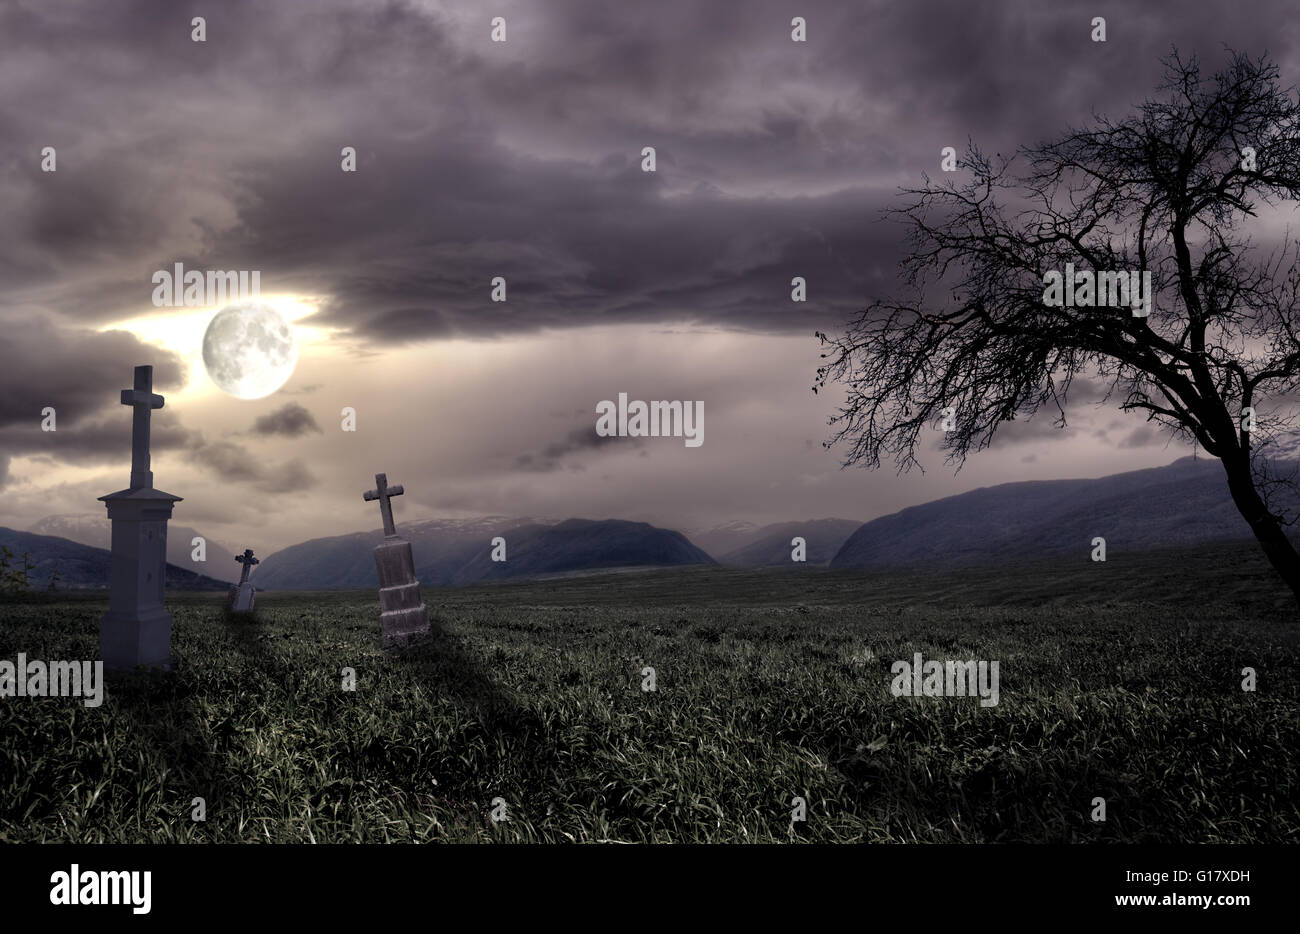 Spooky Halloween graveyard with dark clouds Stock Photo, Royalty ...